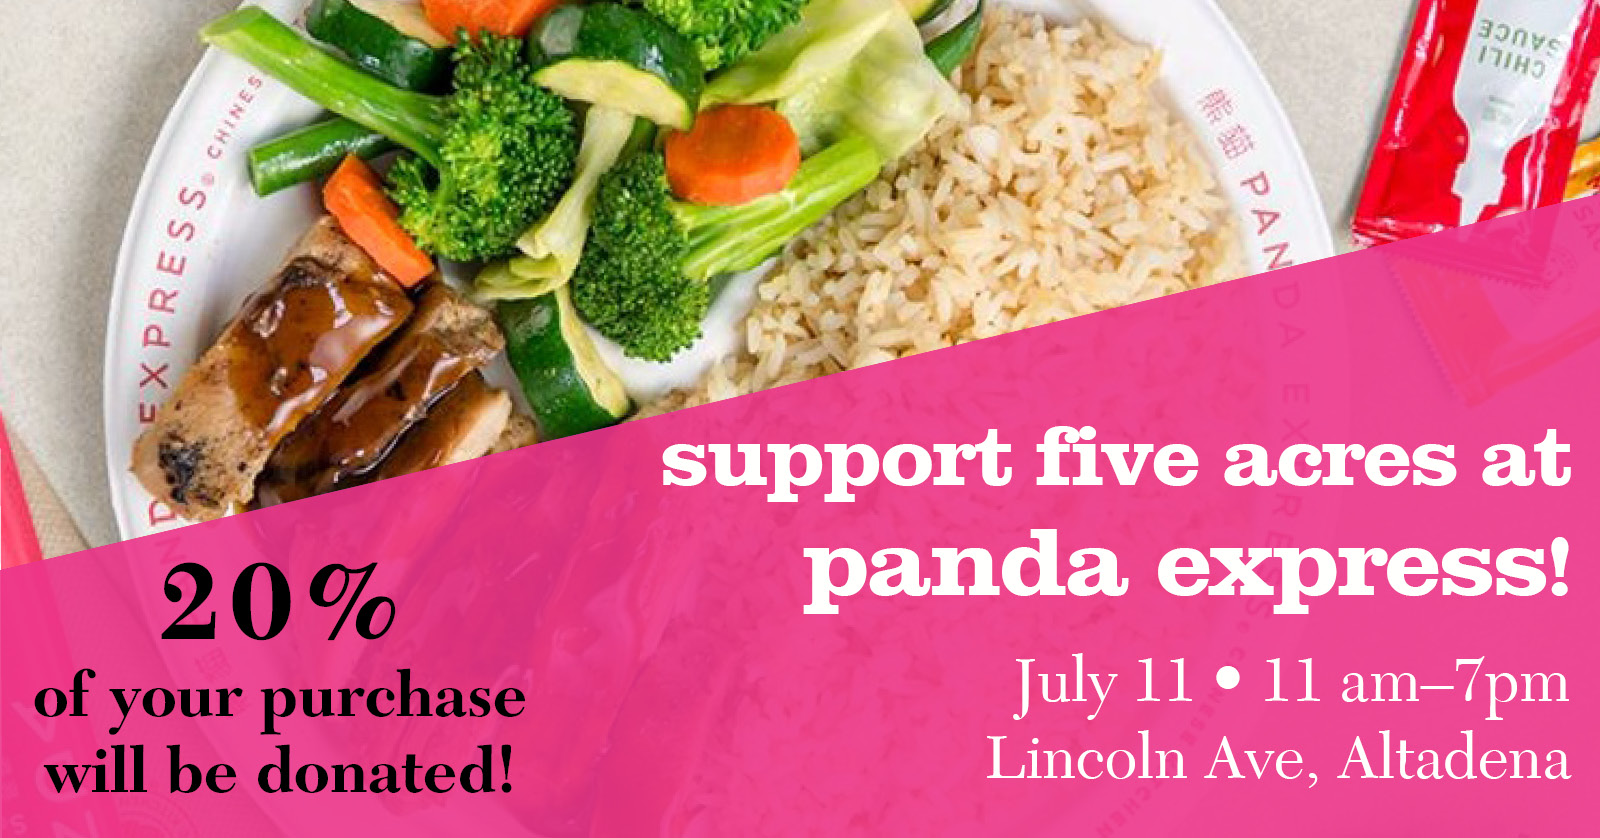 Panda express giveback with five acres